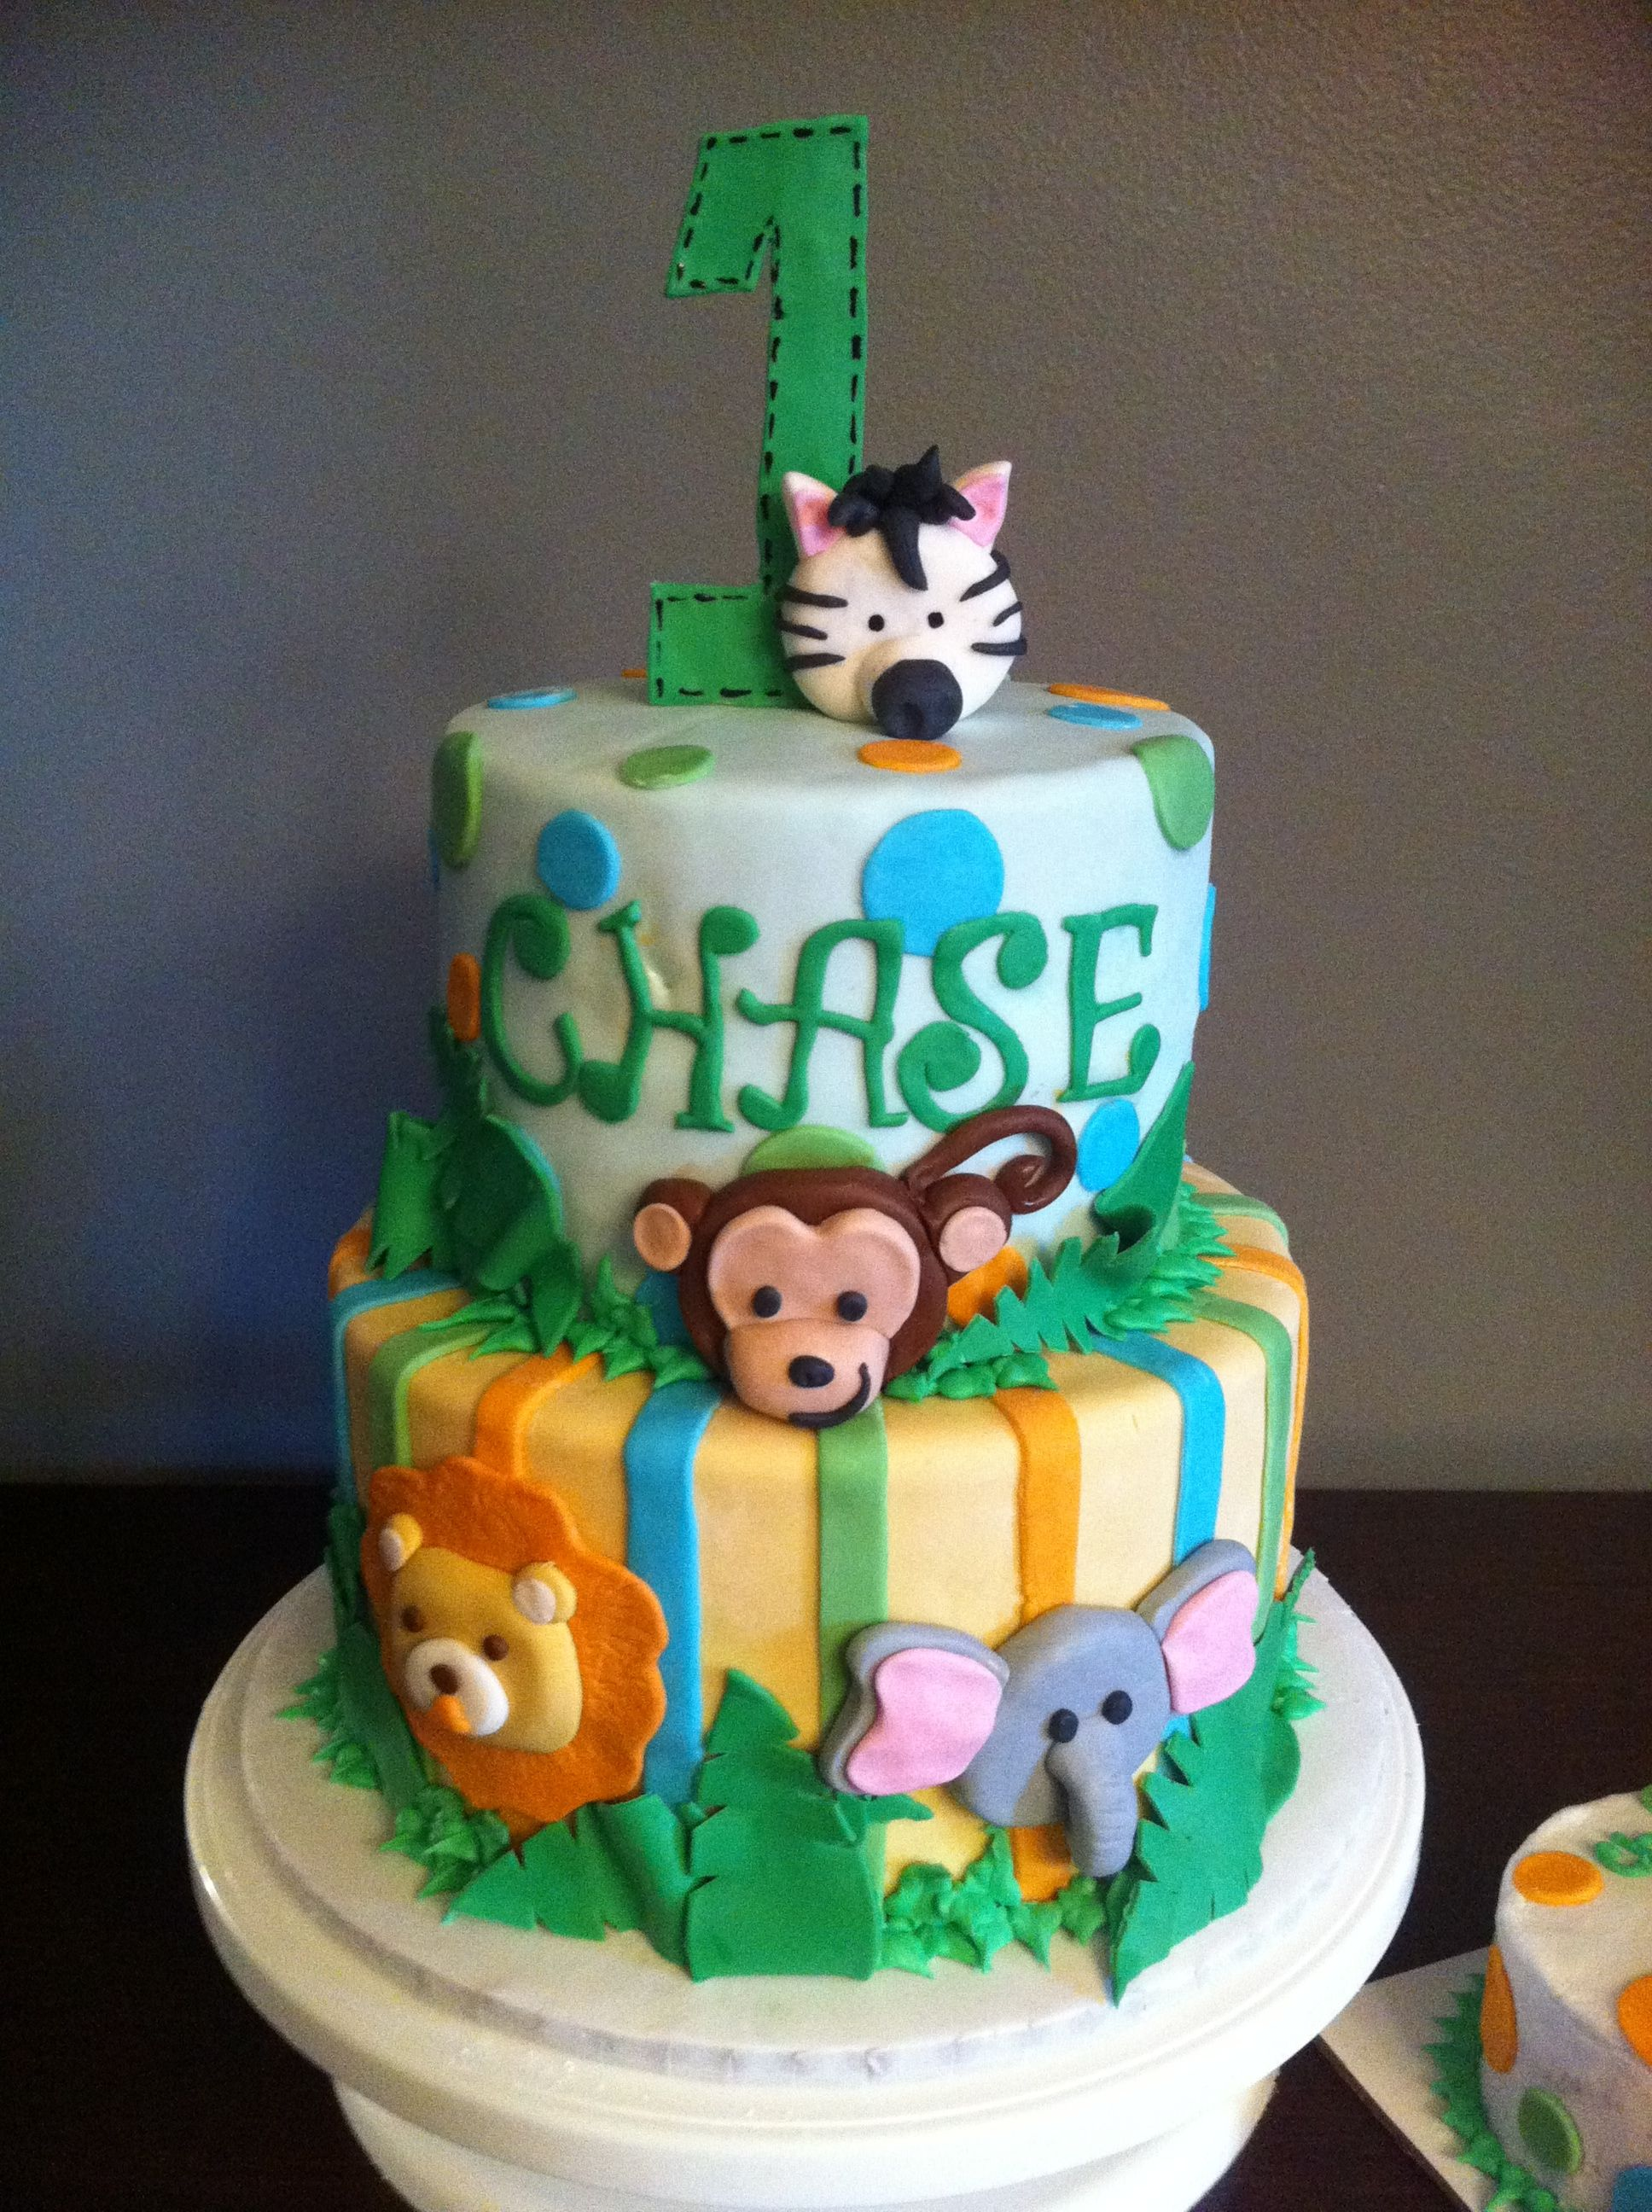 Cake Decorating Animal Figures Jungle Themed Kids Cake Jungle Themed First Birthday Cake